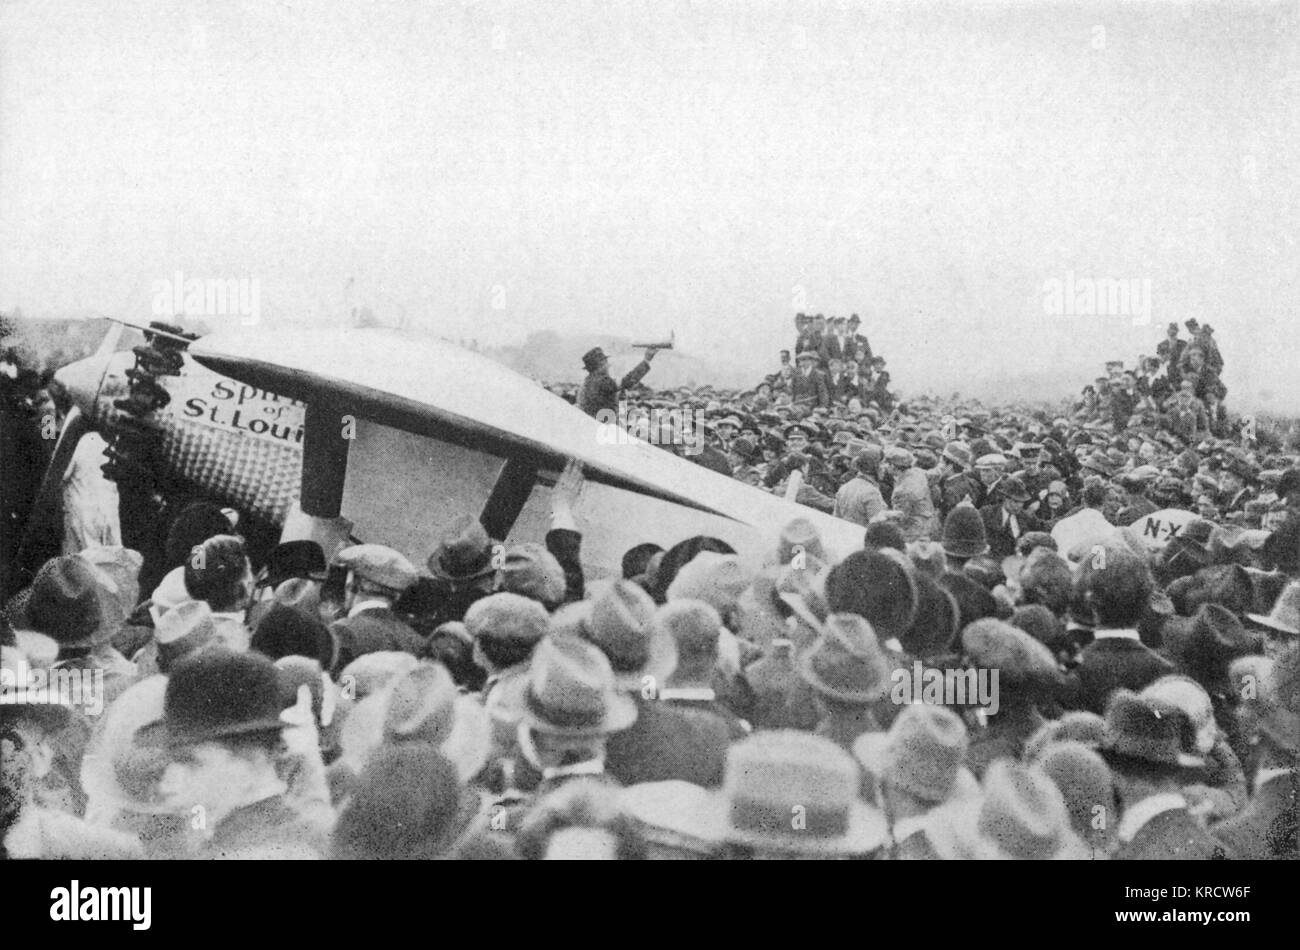 Thousands swamp around the 'Spirit of St. Louis' as the plane lands at Croydon, London. Date: 1927 - Stock Image